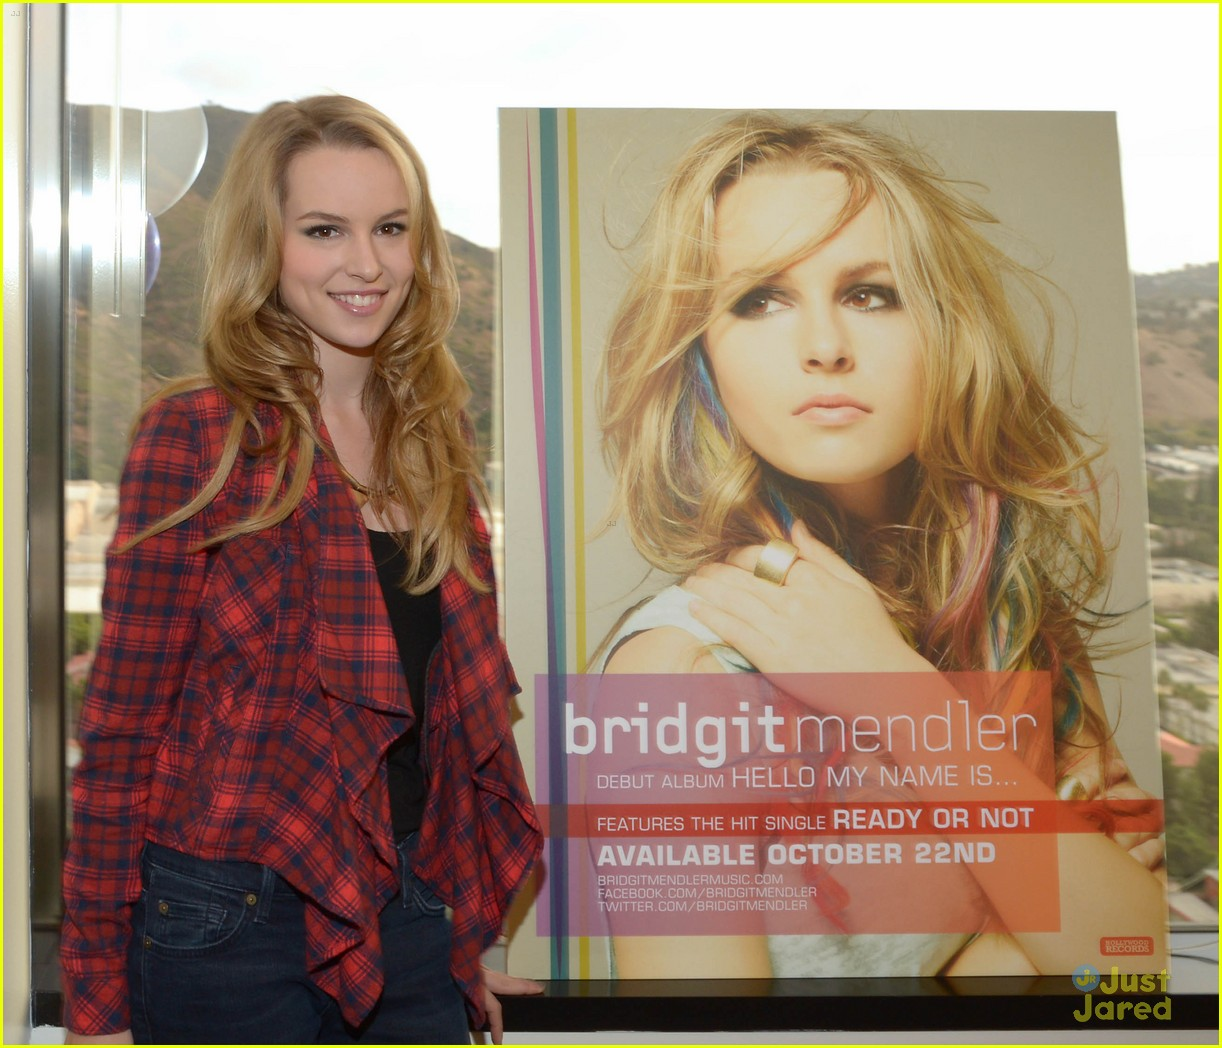 bridgit mendler album stream 01